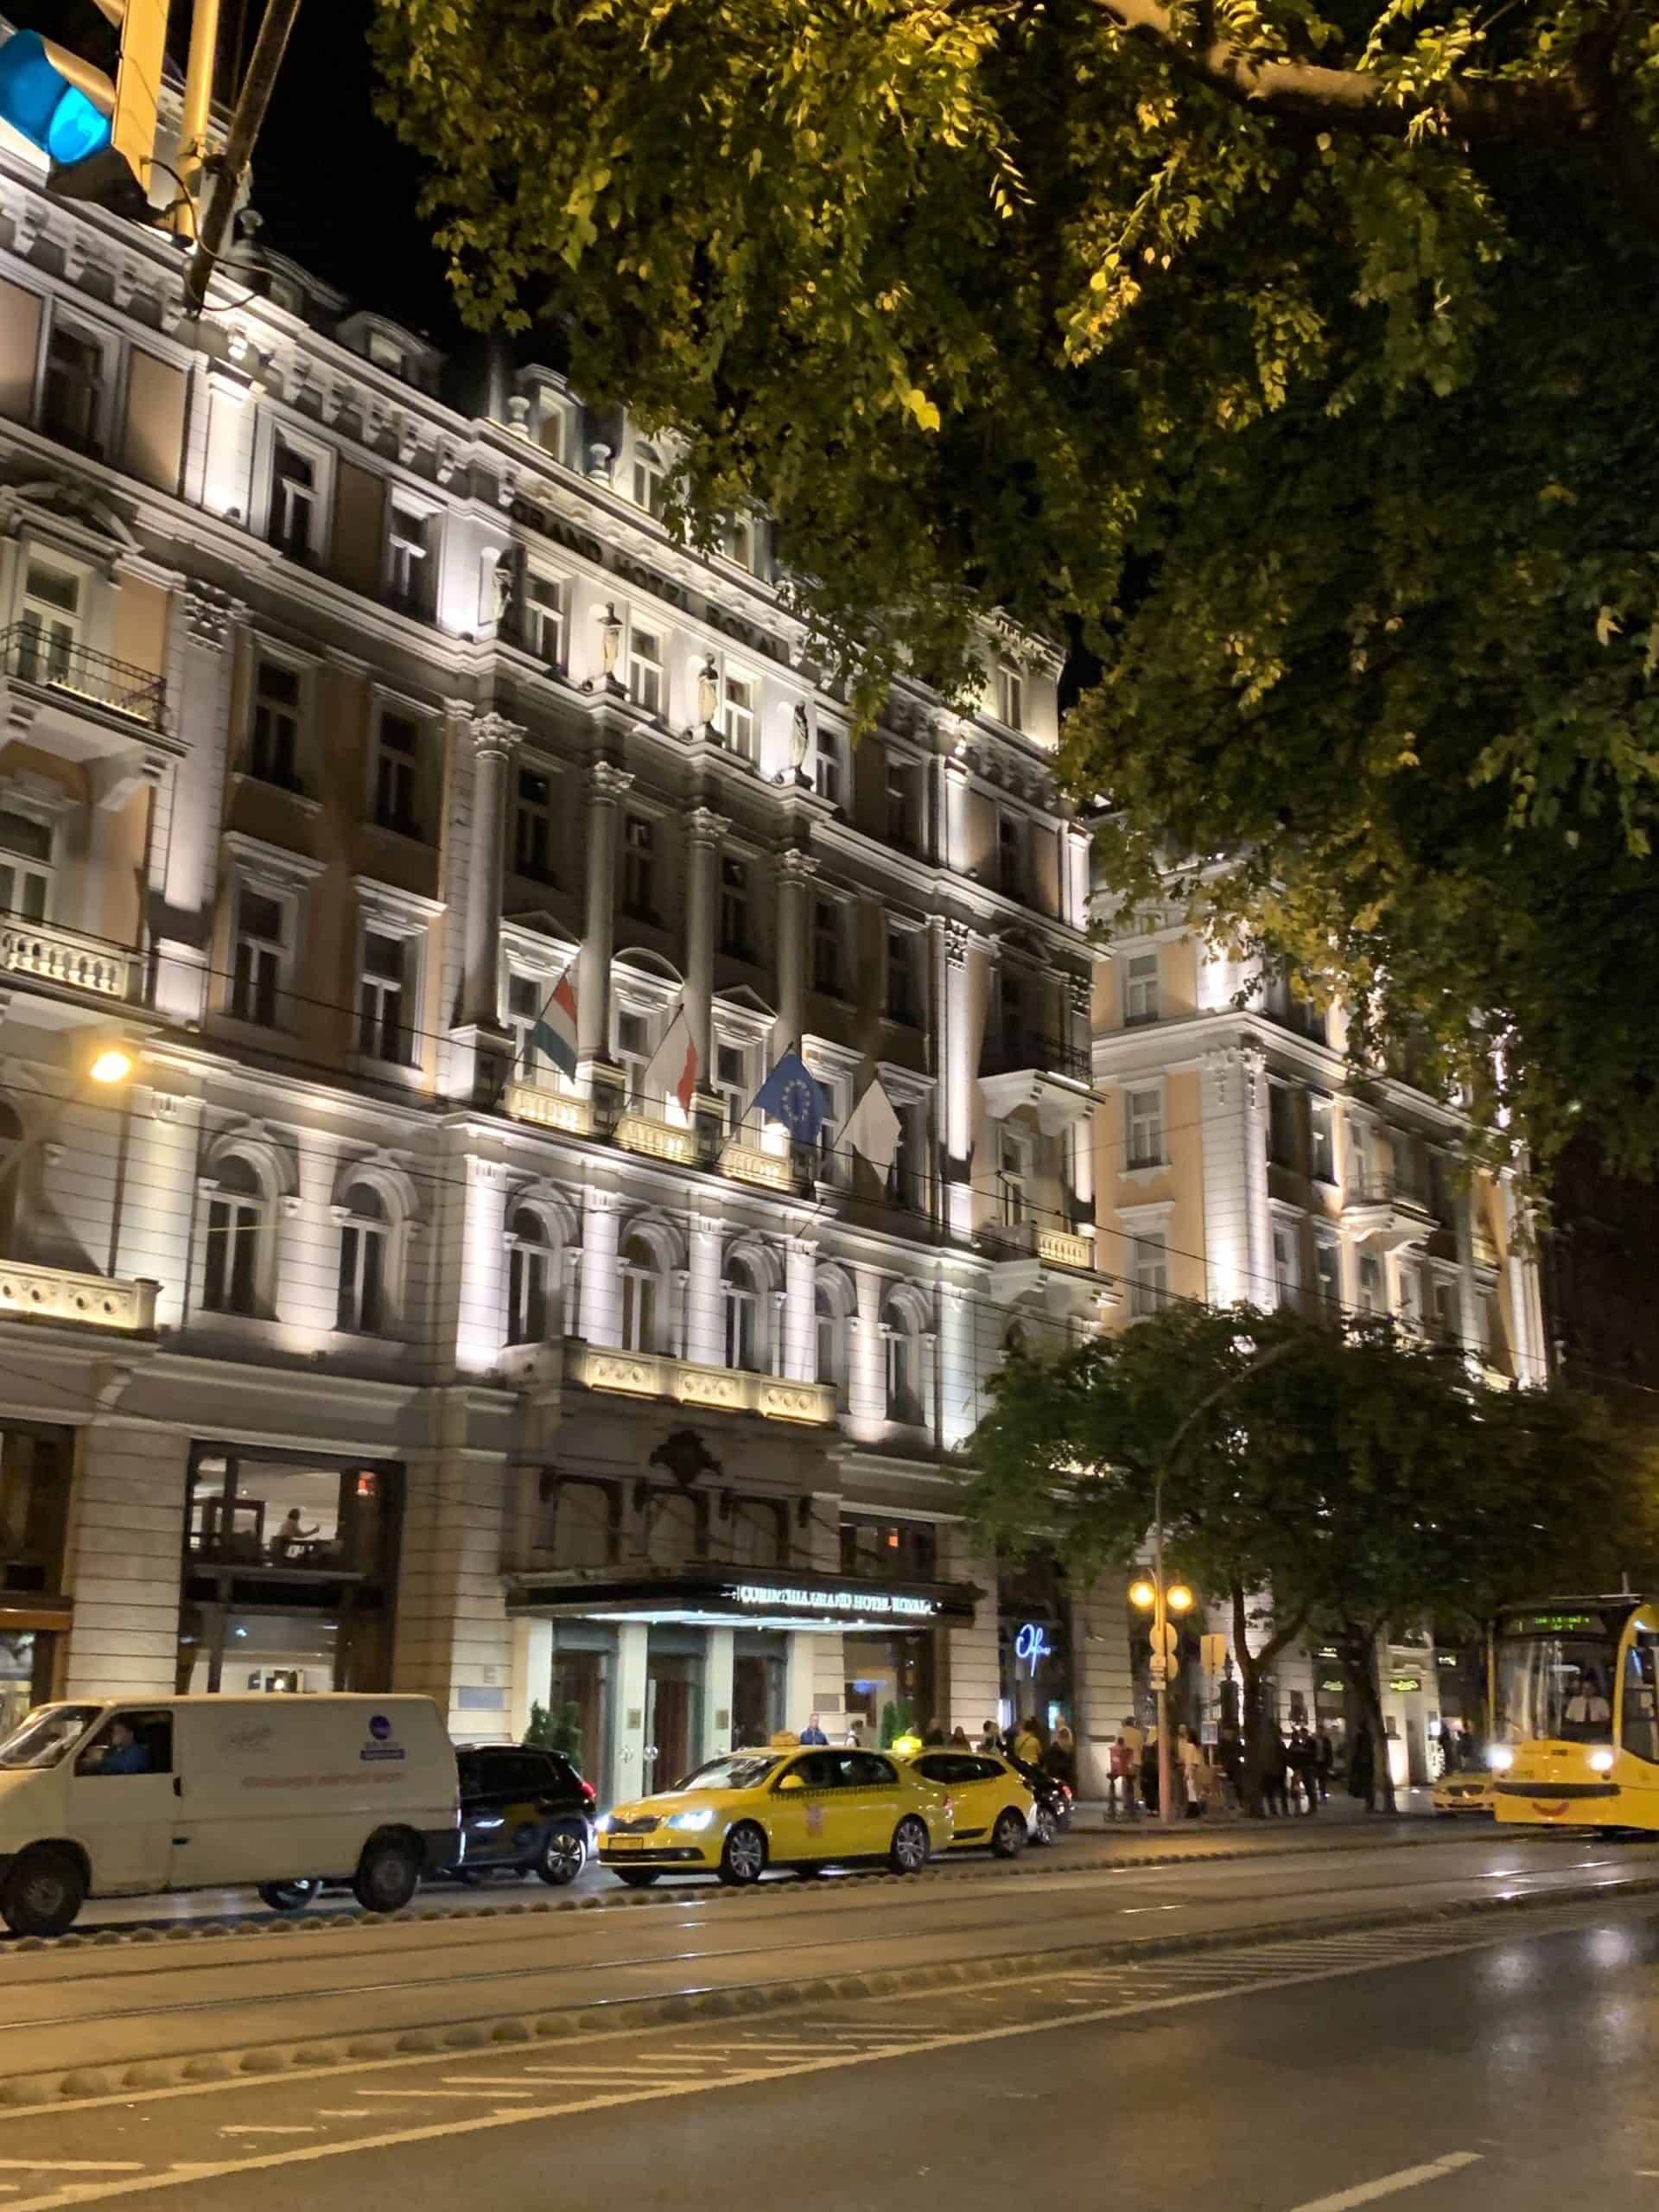 Corinthia Budapest at night